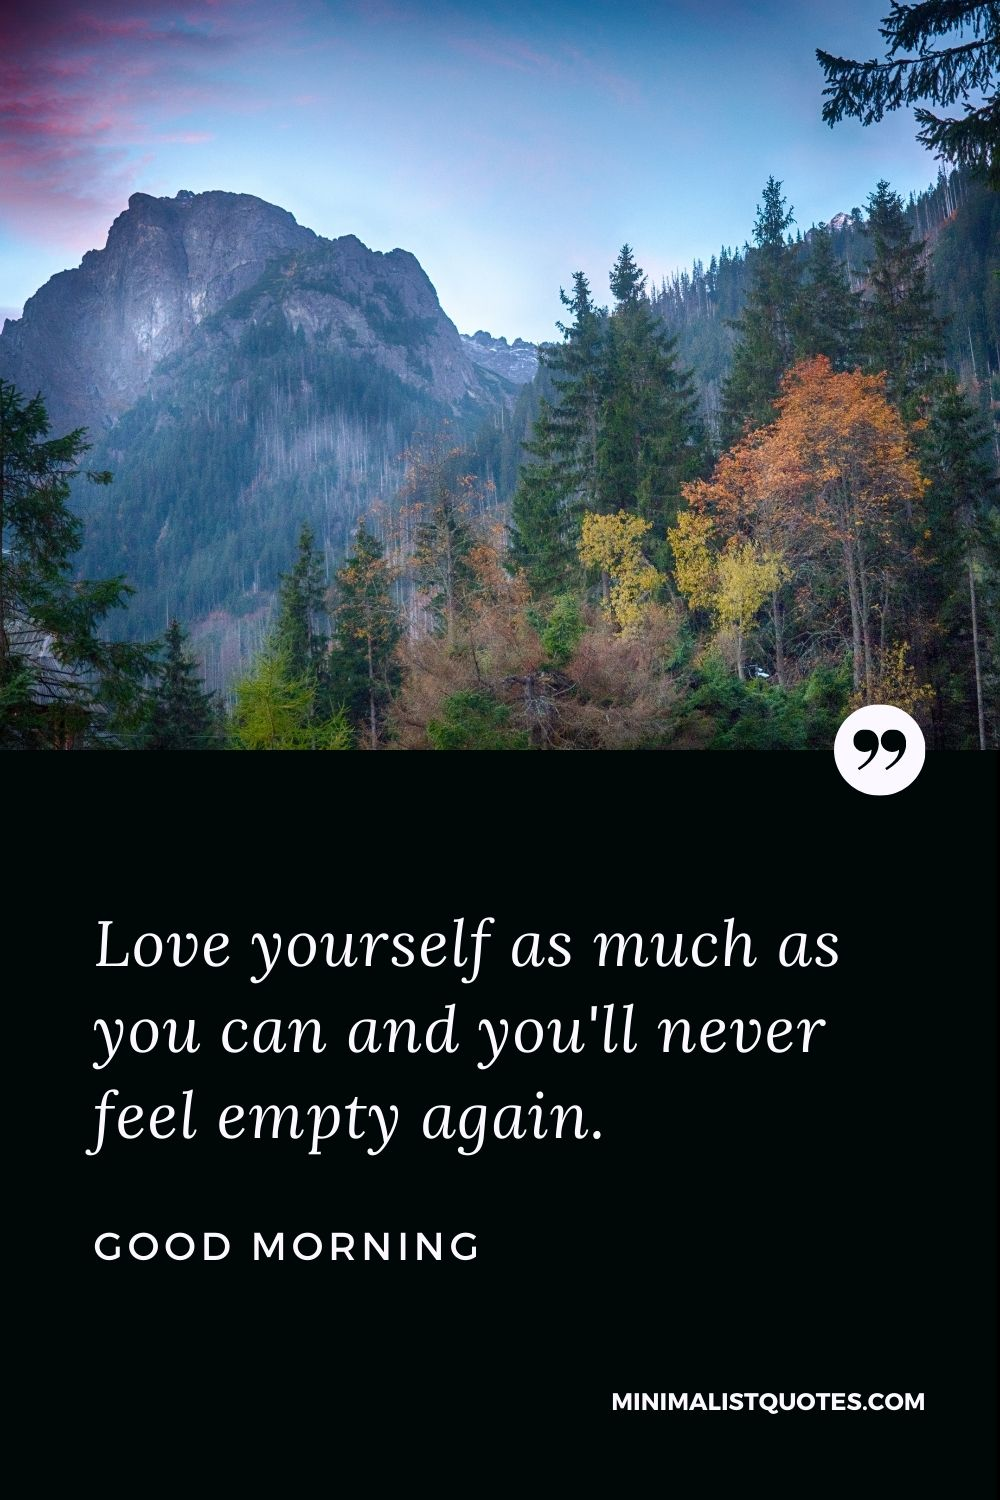 Good Morning Wish & Message With Image: Love yourself as much as you can and you'll never feel emptyagain.